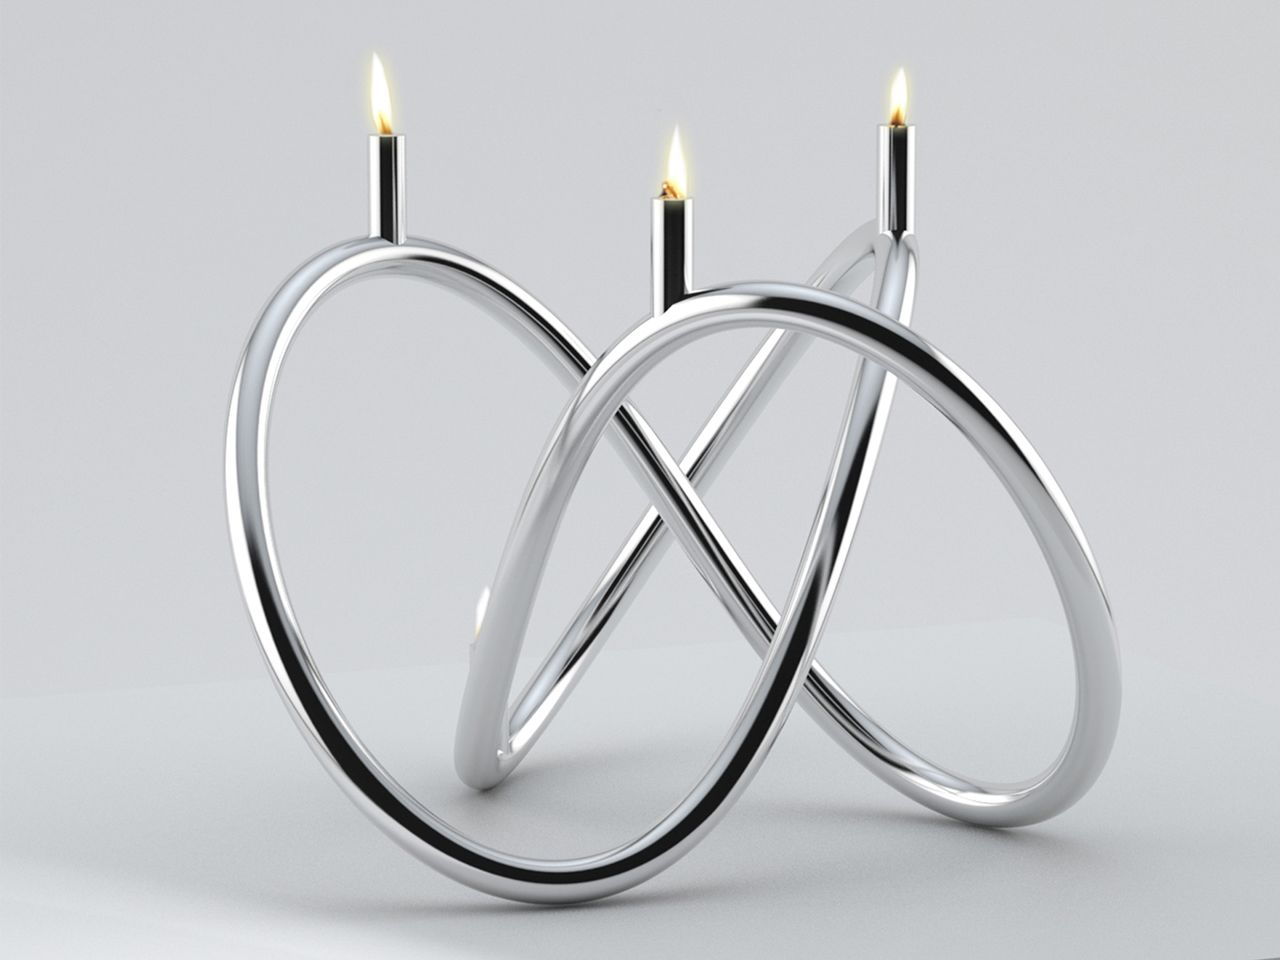 modern candle holder  to buy  to think to make  pinterest  - modern candle holder